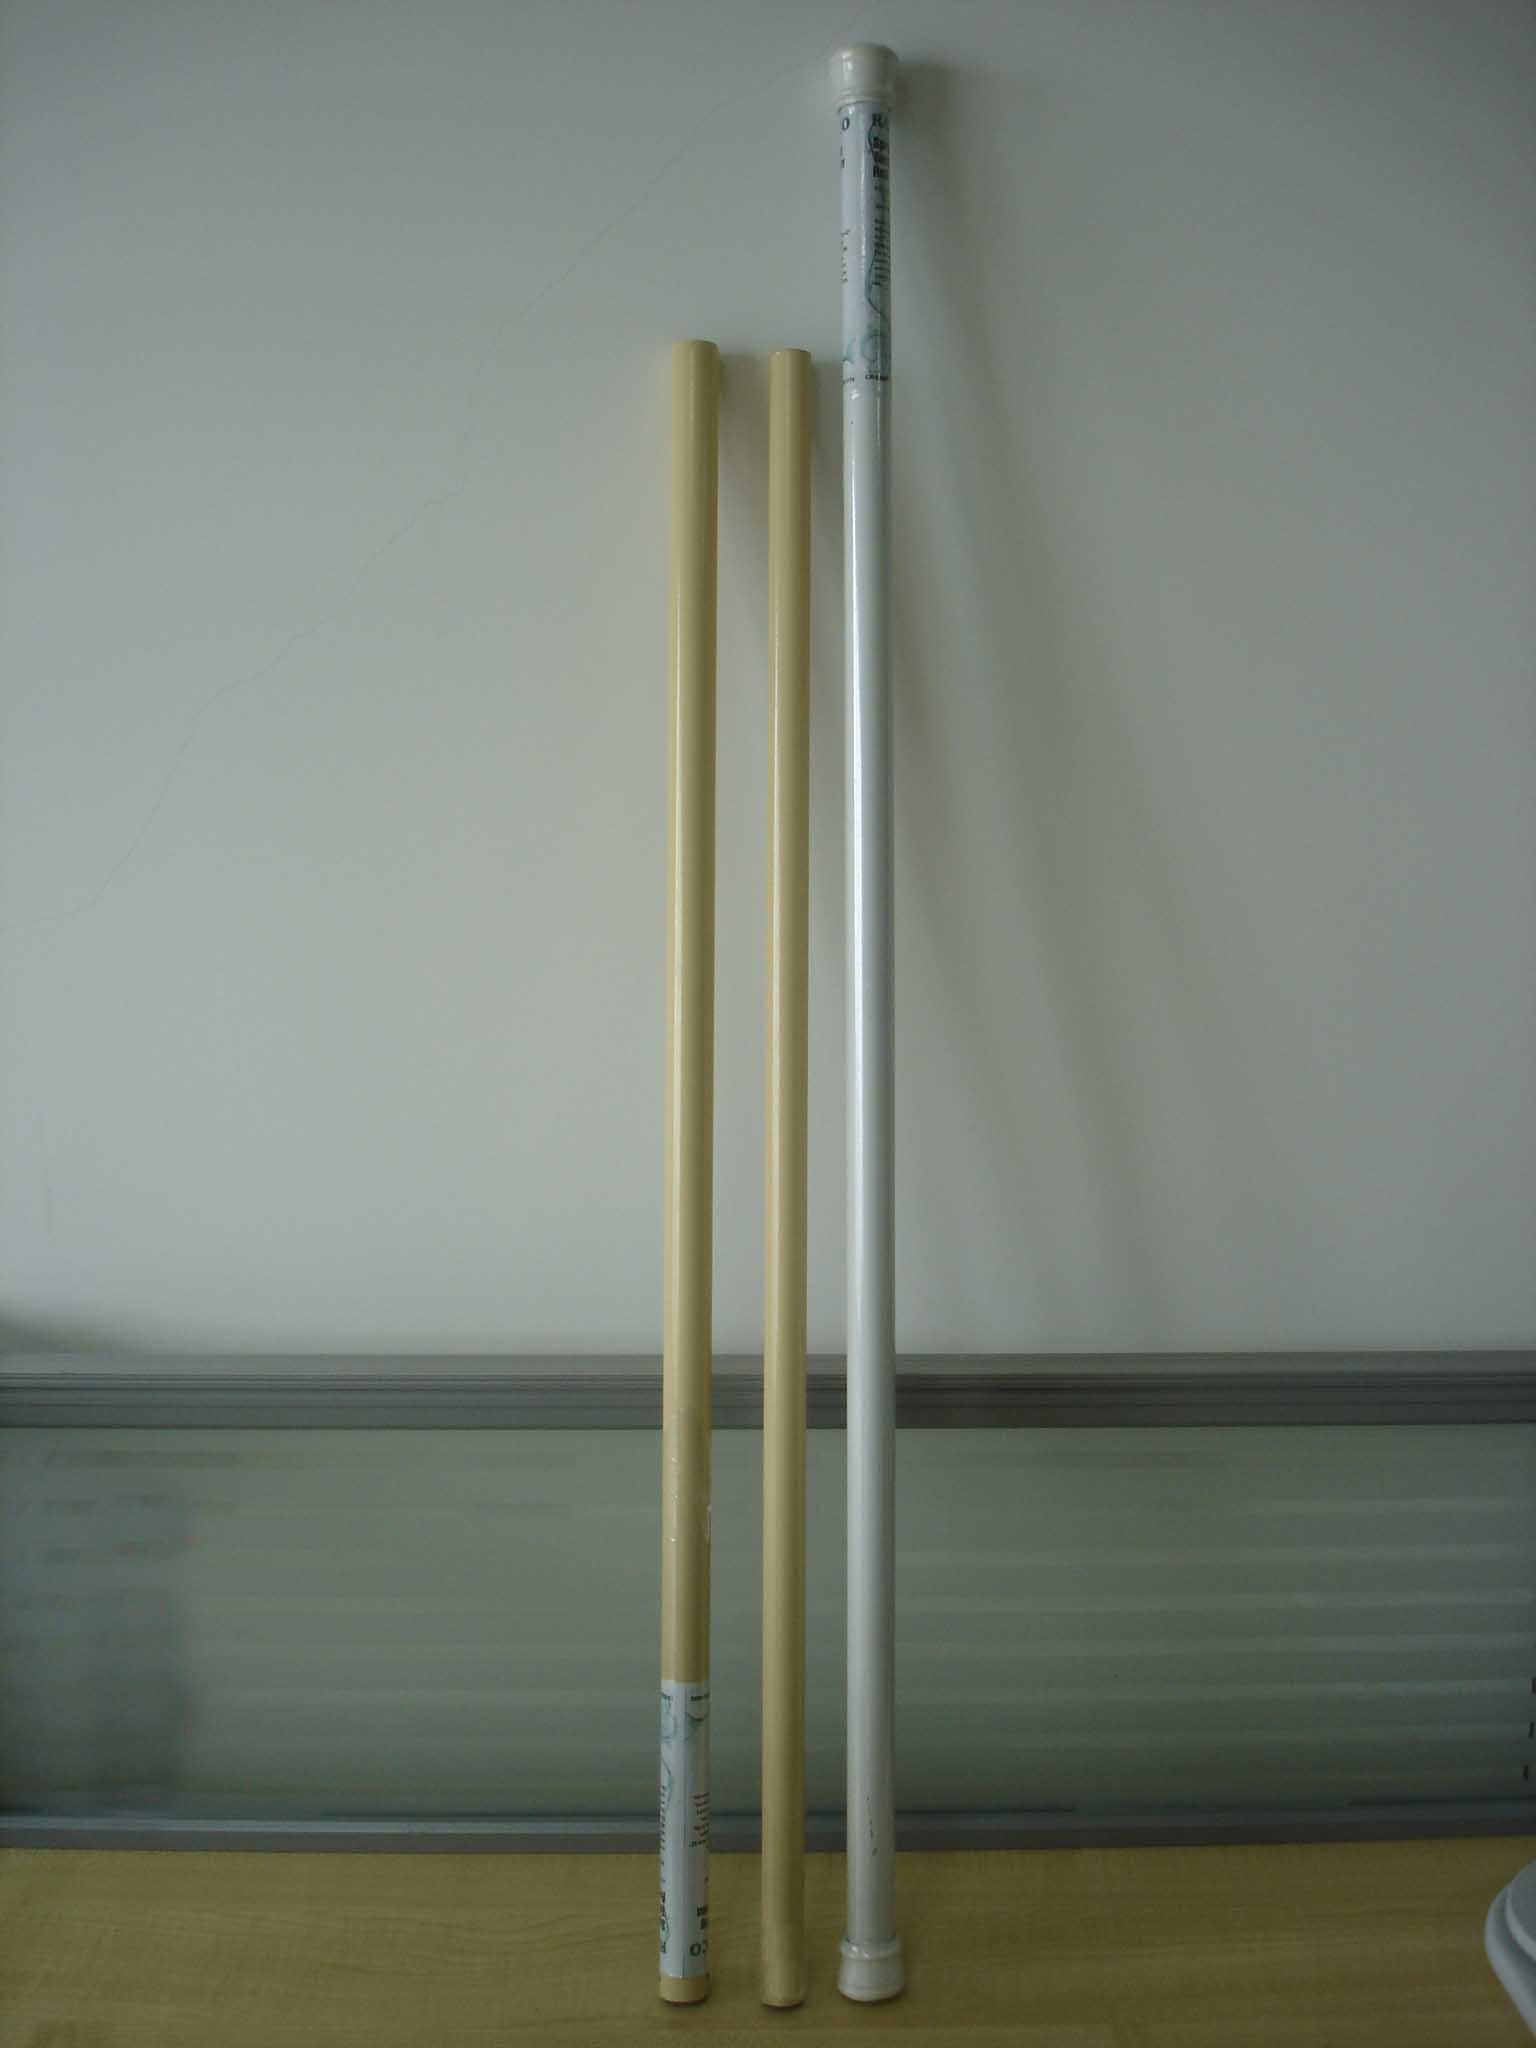 Tension Rods For Curtains Curtains Blinds